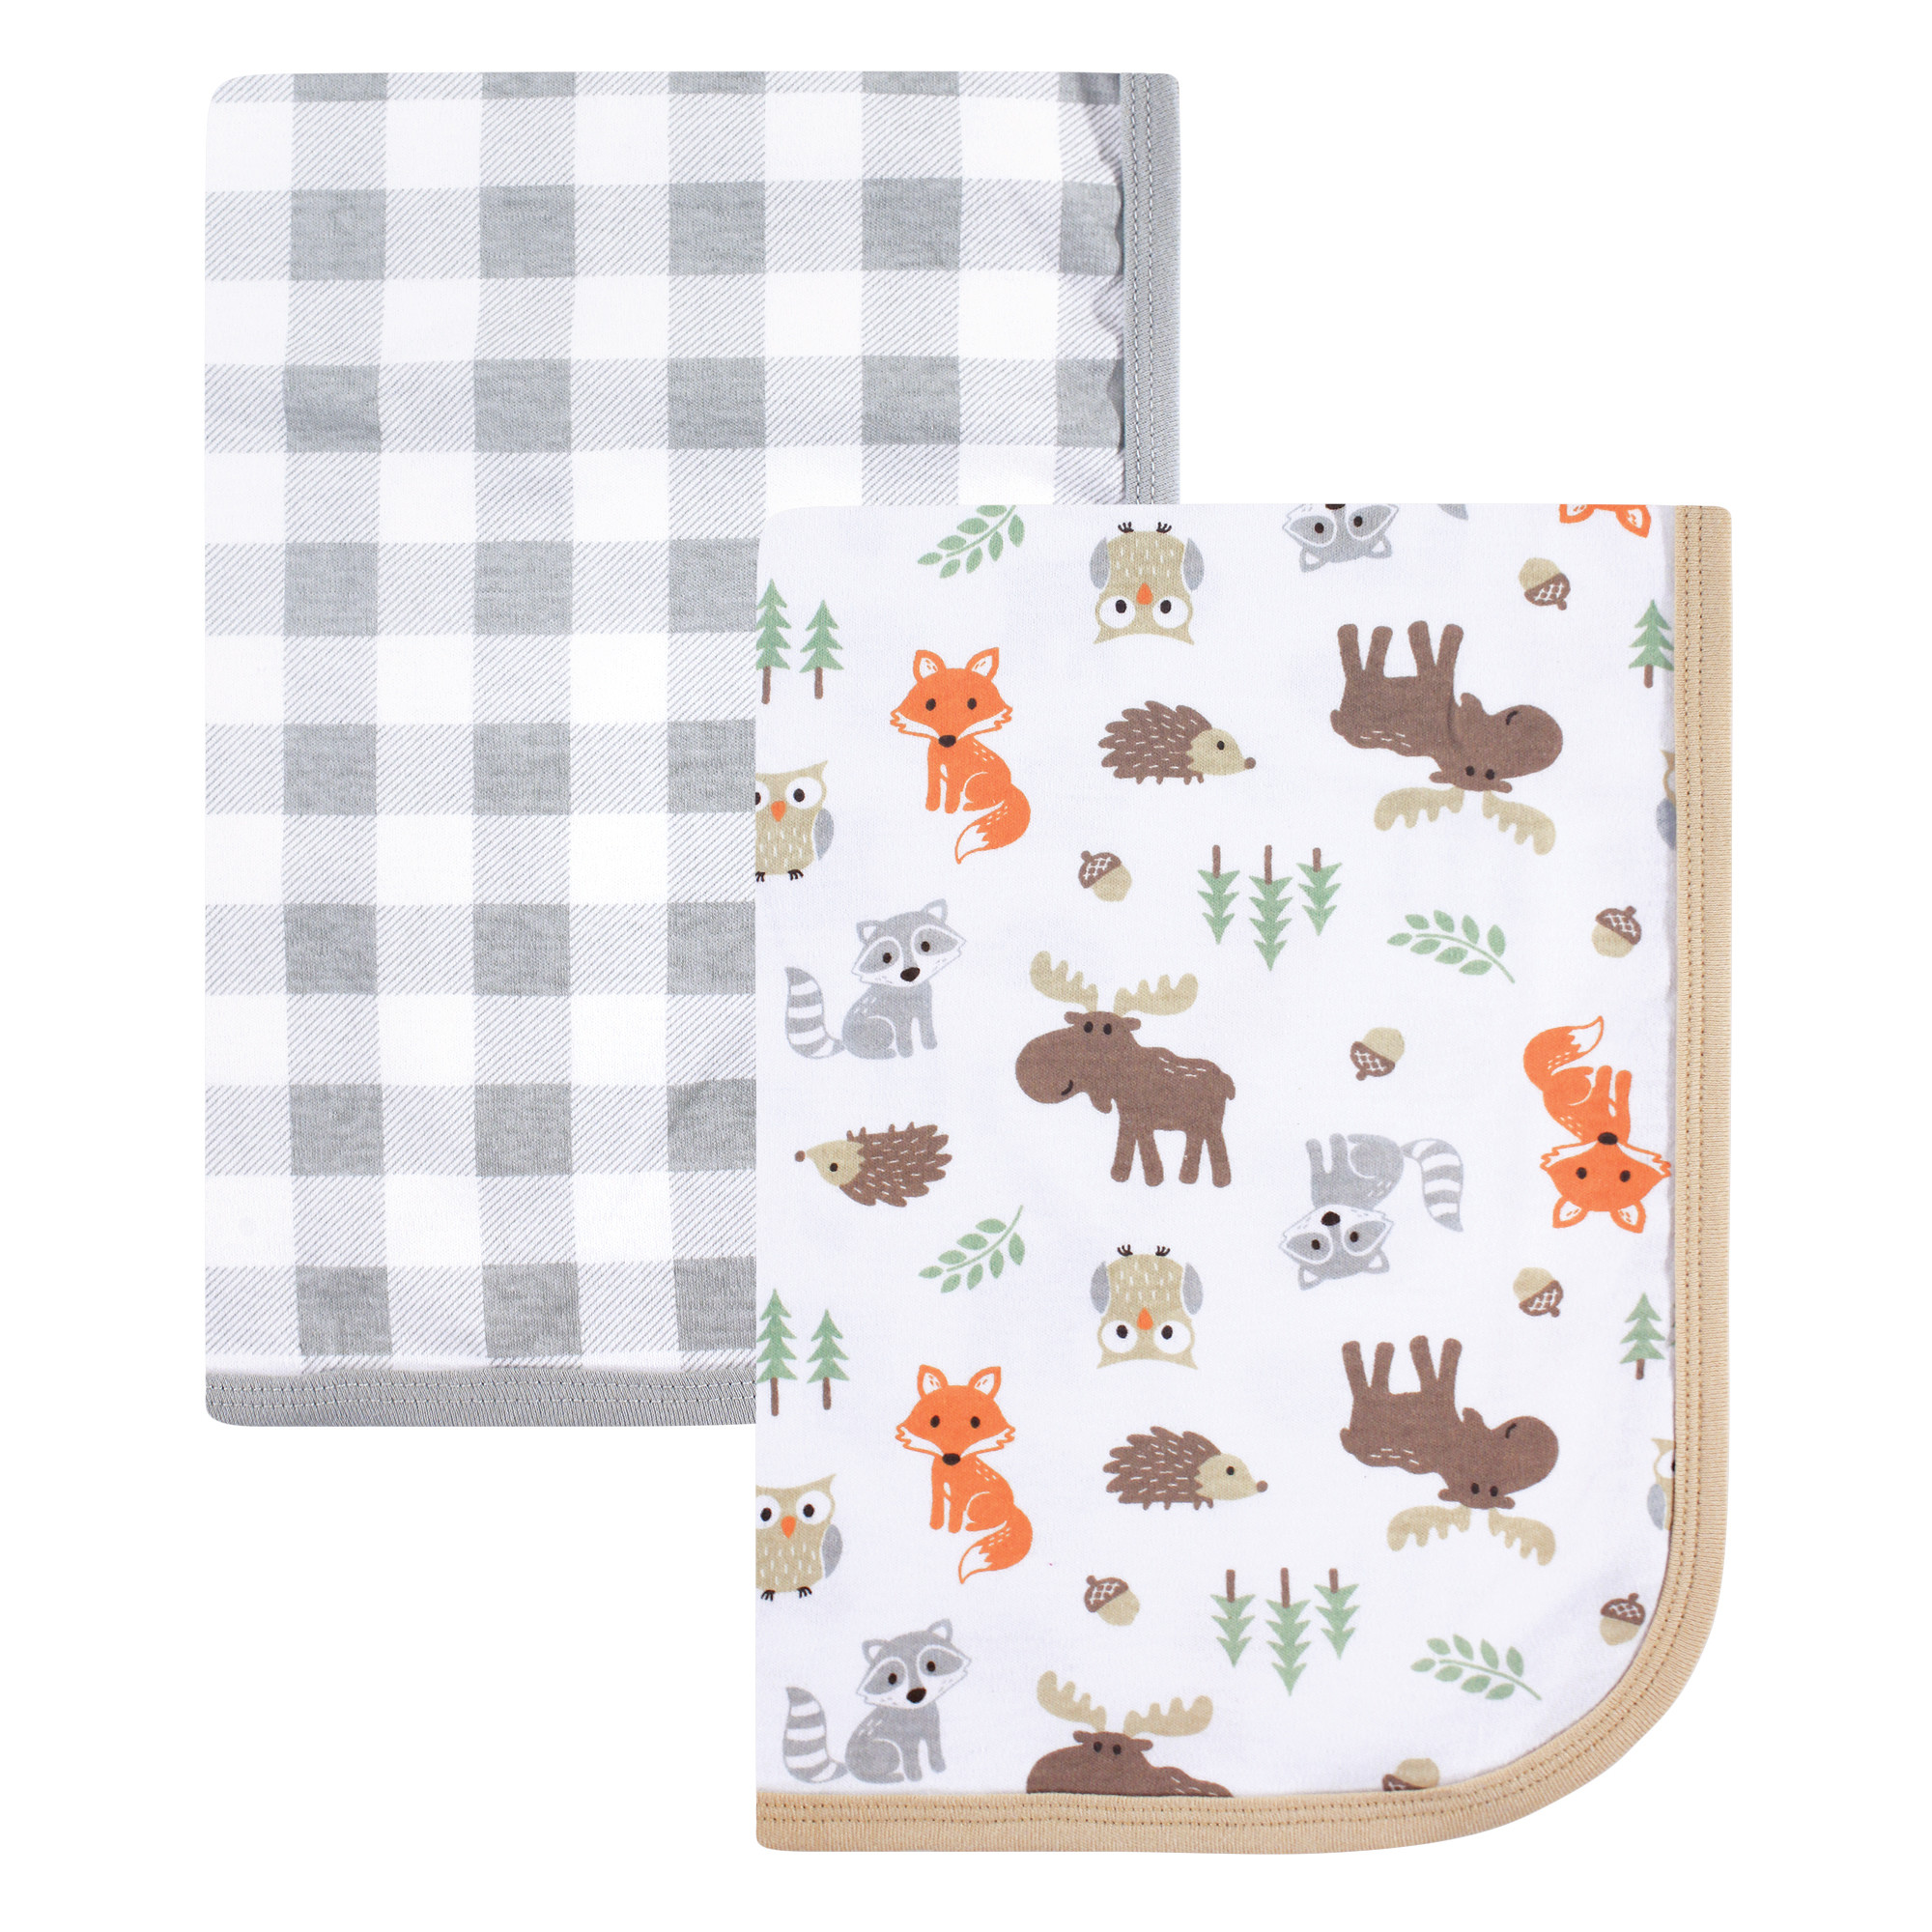 Hudson Baby Boy and Girl Interlock Cotton Blanket, 2-Pack, Woodland